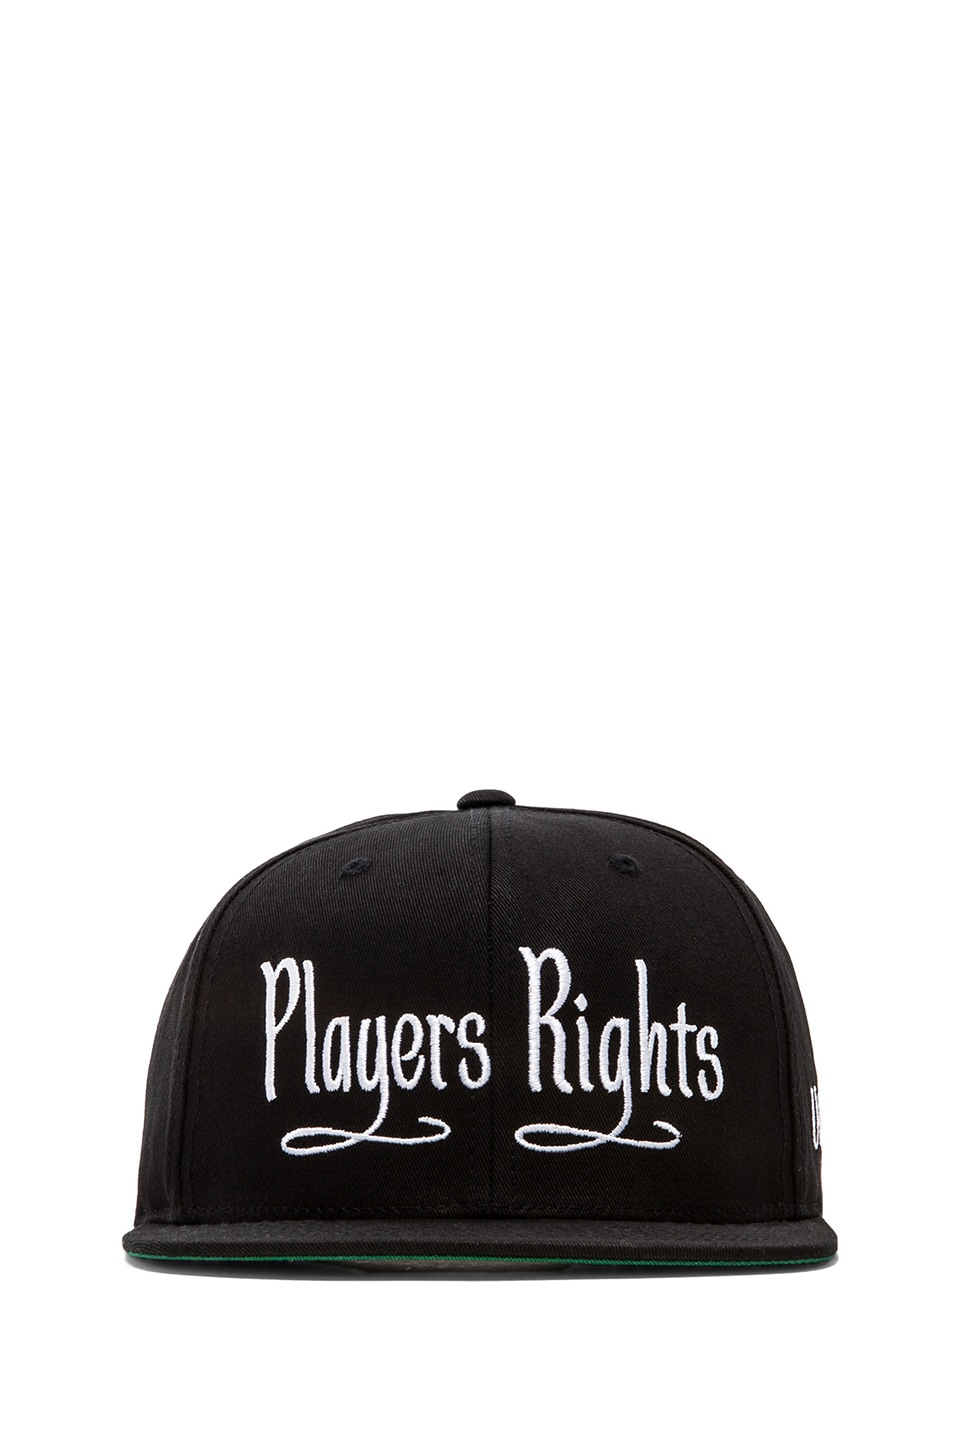 Undefeated Players Starter Snapback in Black